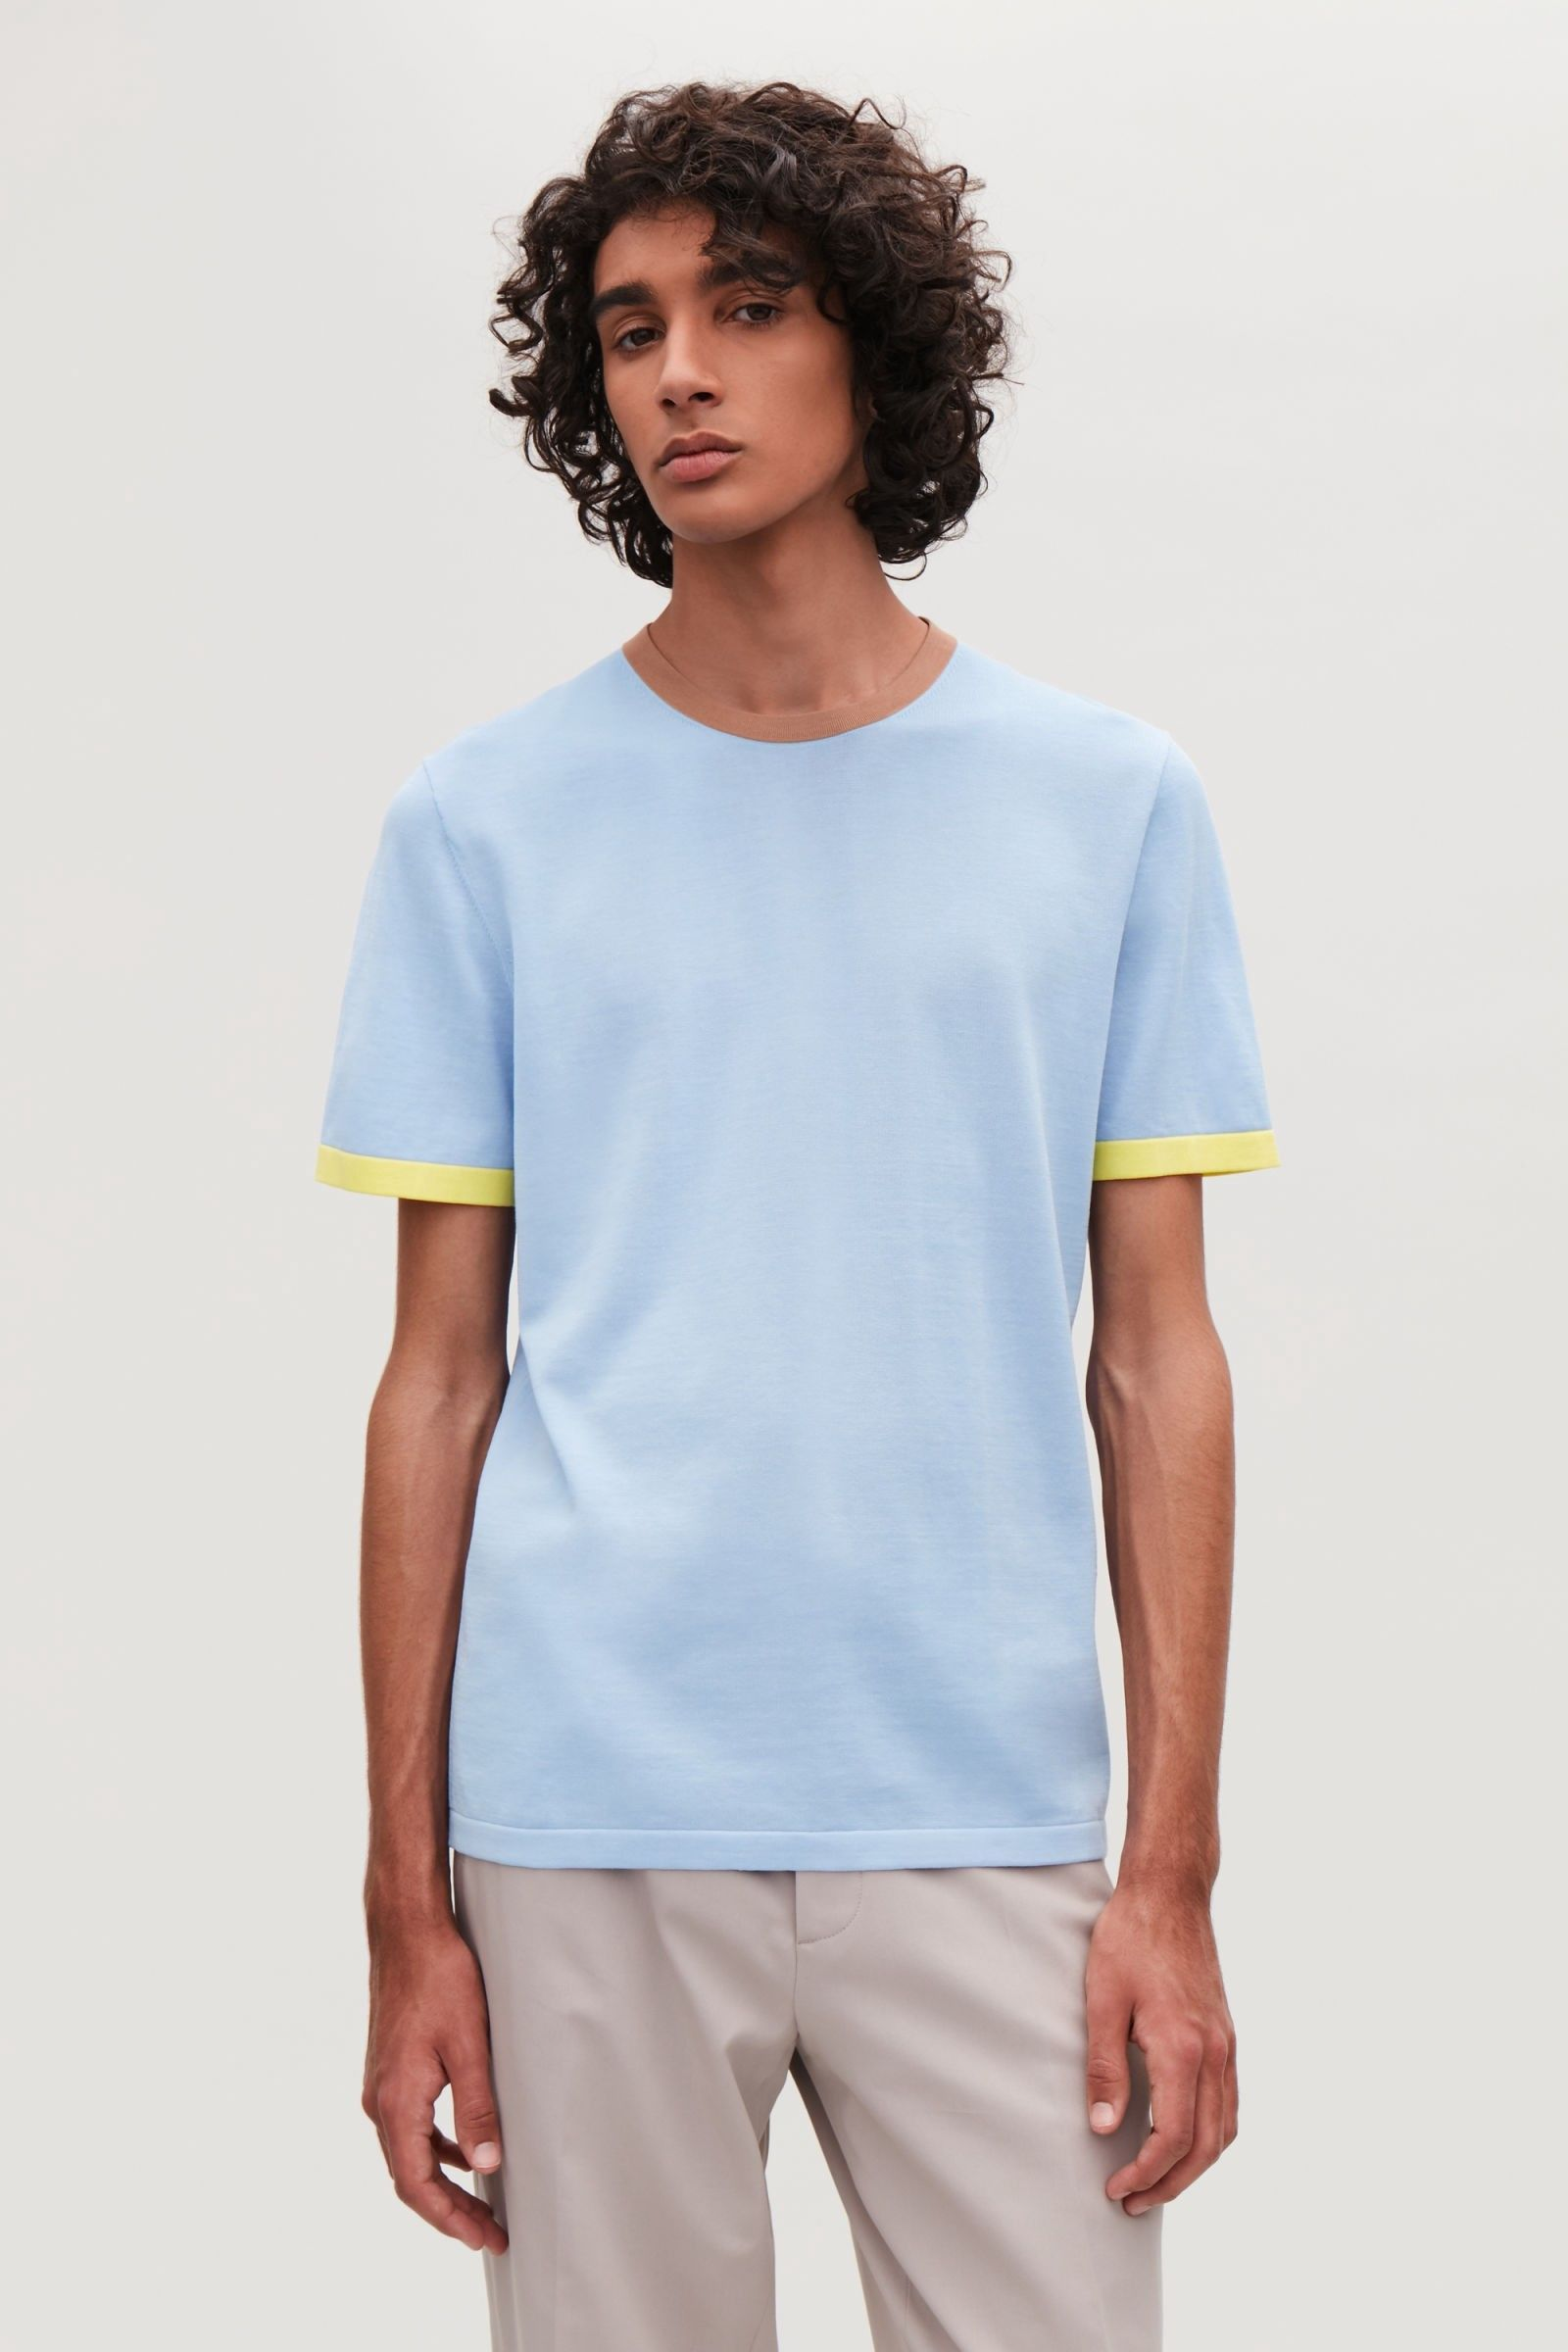 Cos Knitted Colour-Block T-Shirt - Light Blue XL  0e06e5a7bd7